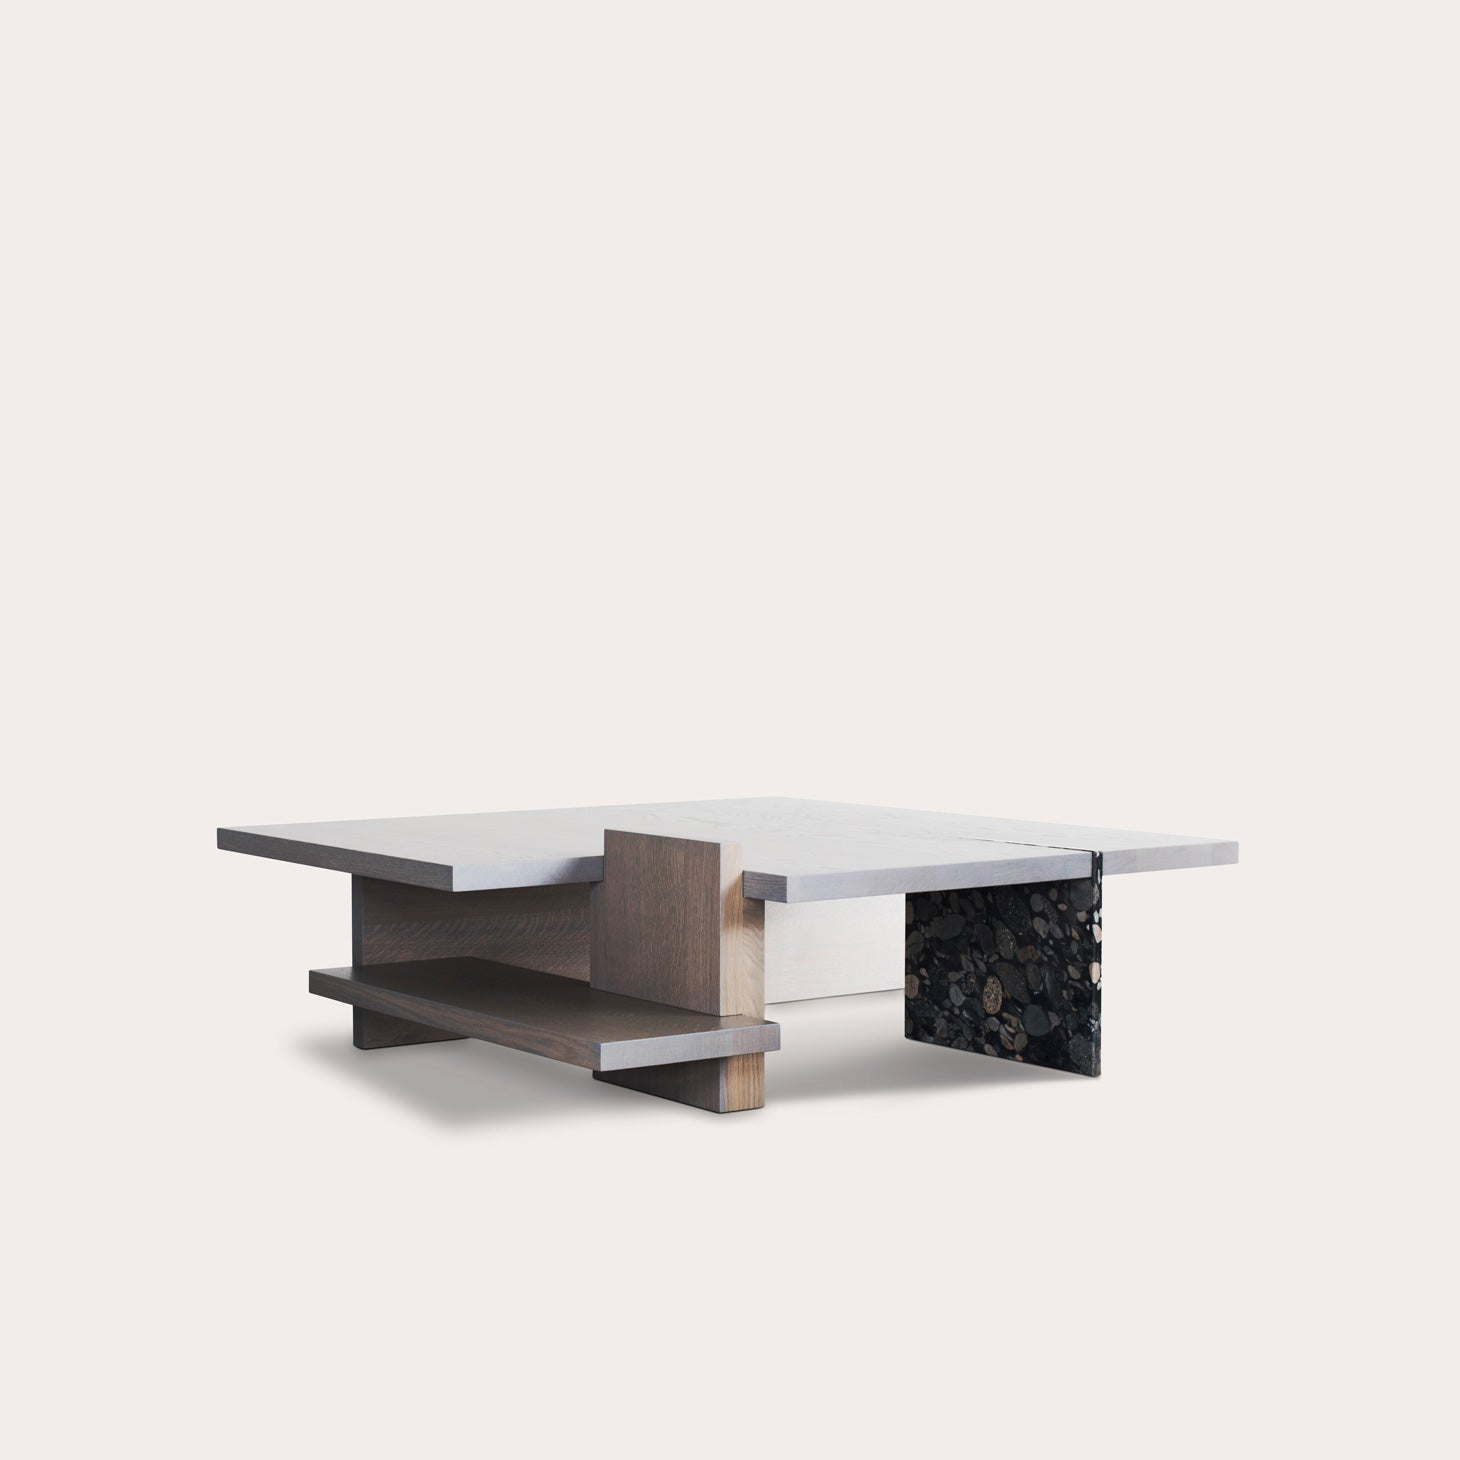 Stijl Tables Erjan Borren Designer Furniture Sku: 416-230-10268